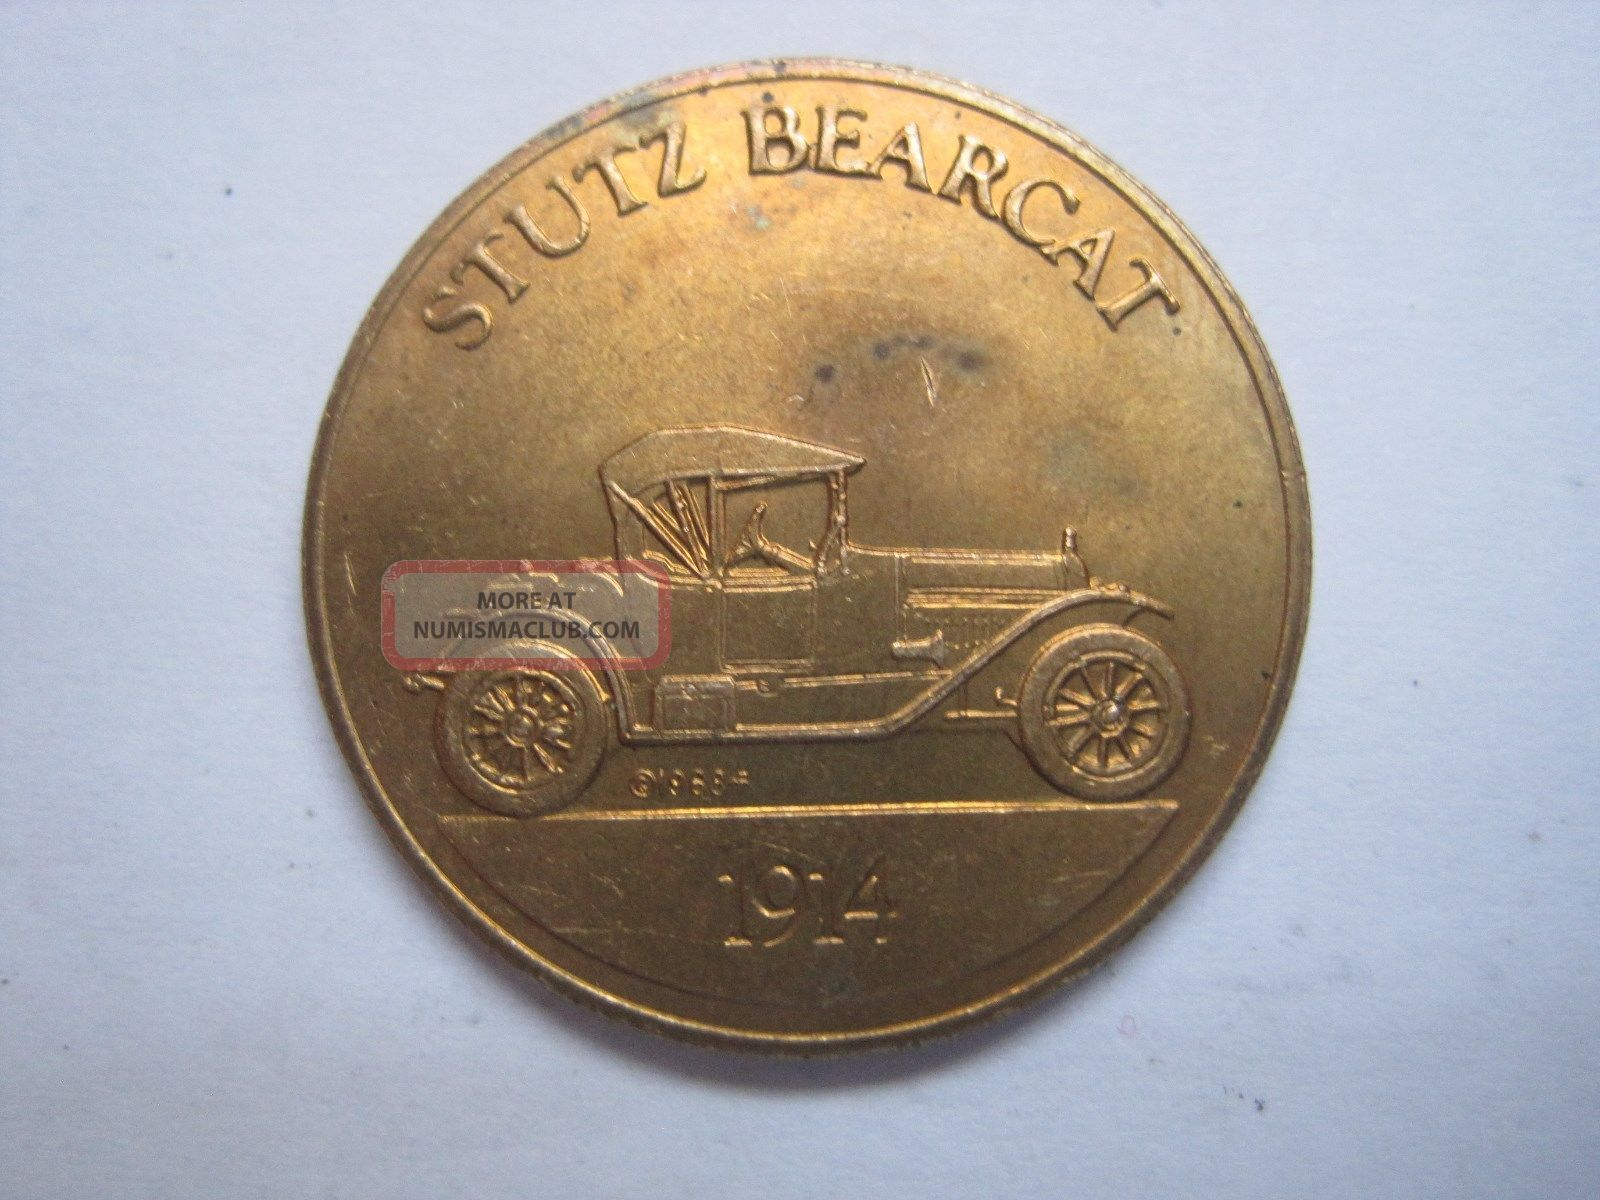 Stutz Bearcat 1914 Antique Car Token Coin Medal Exonumia photo